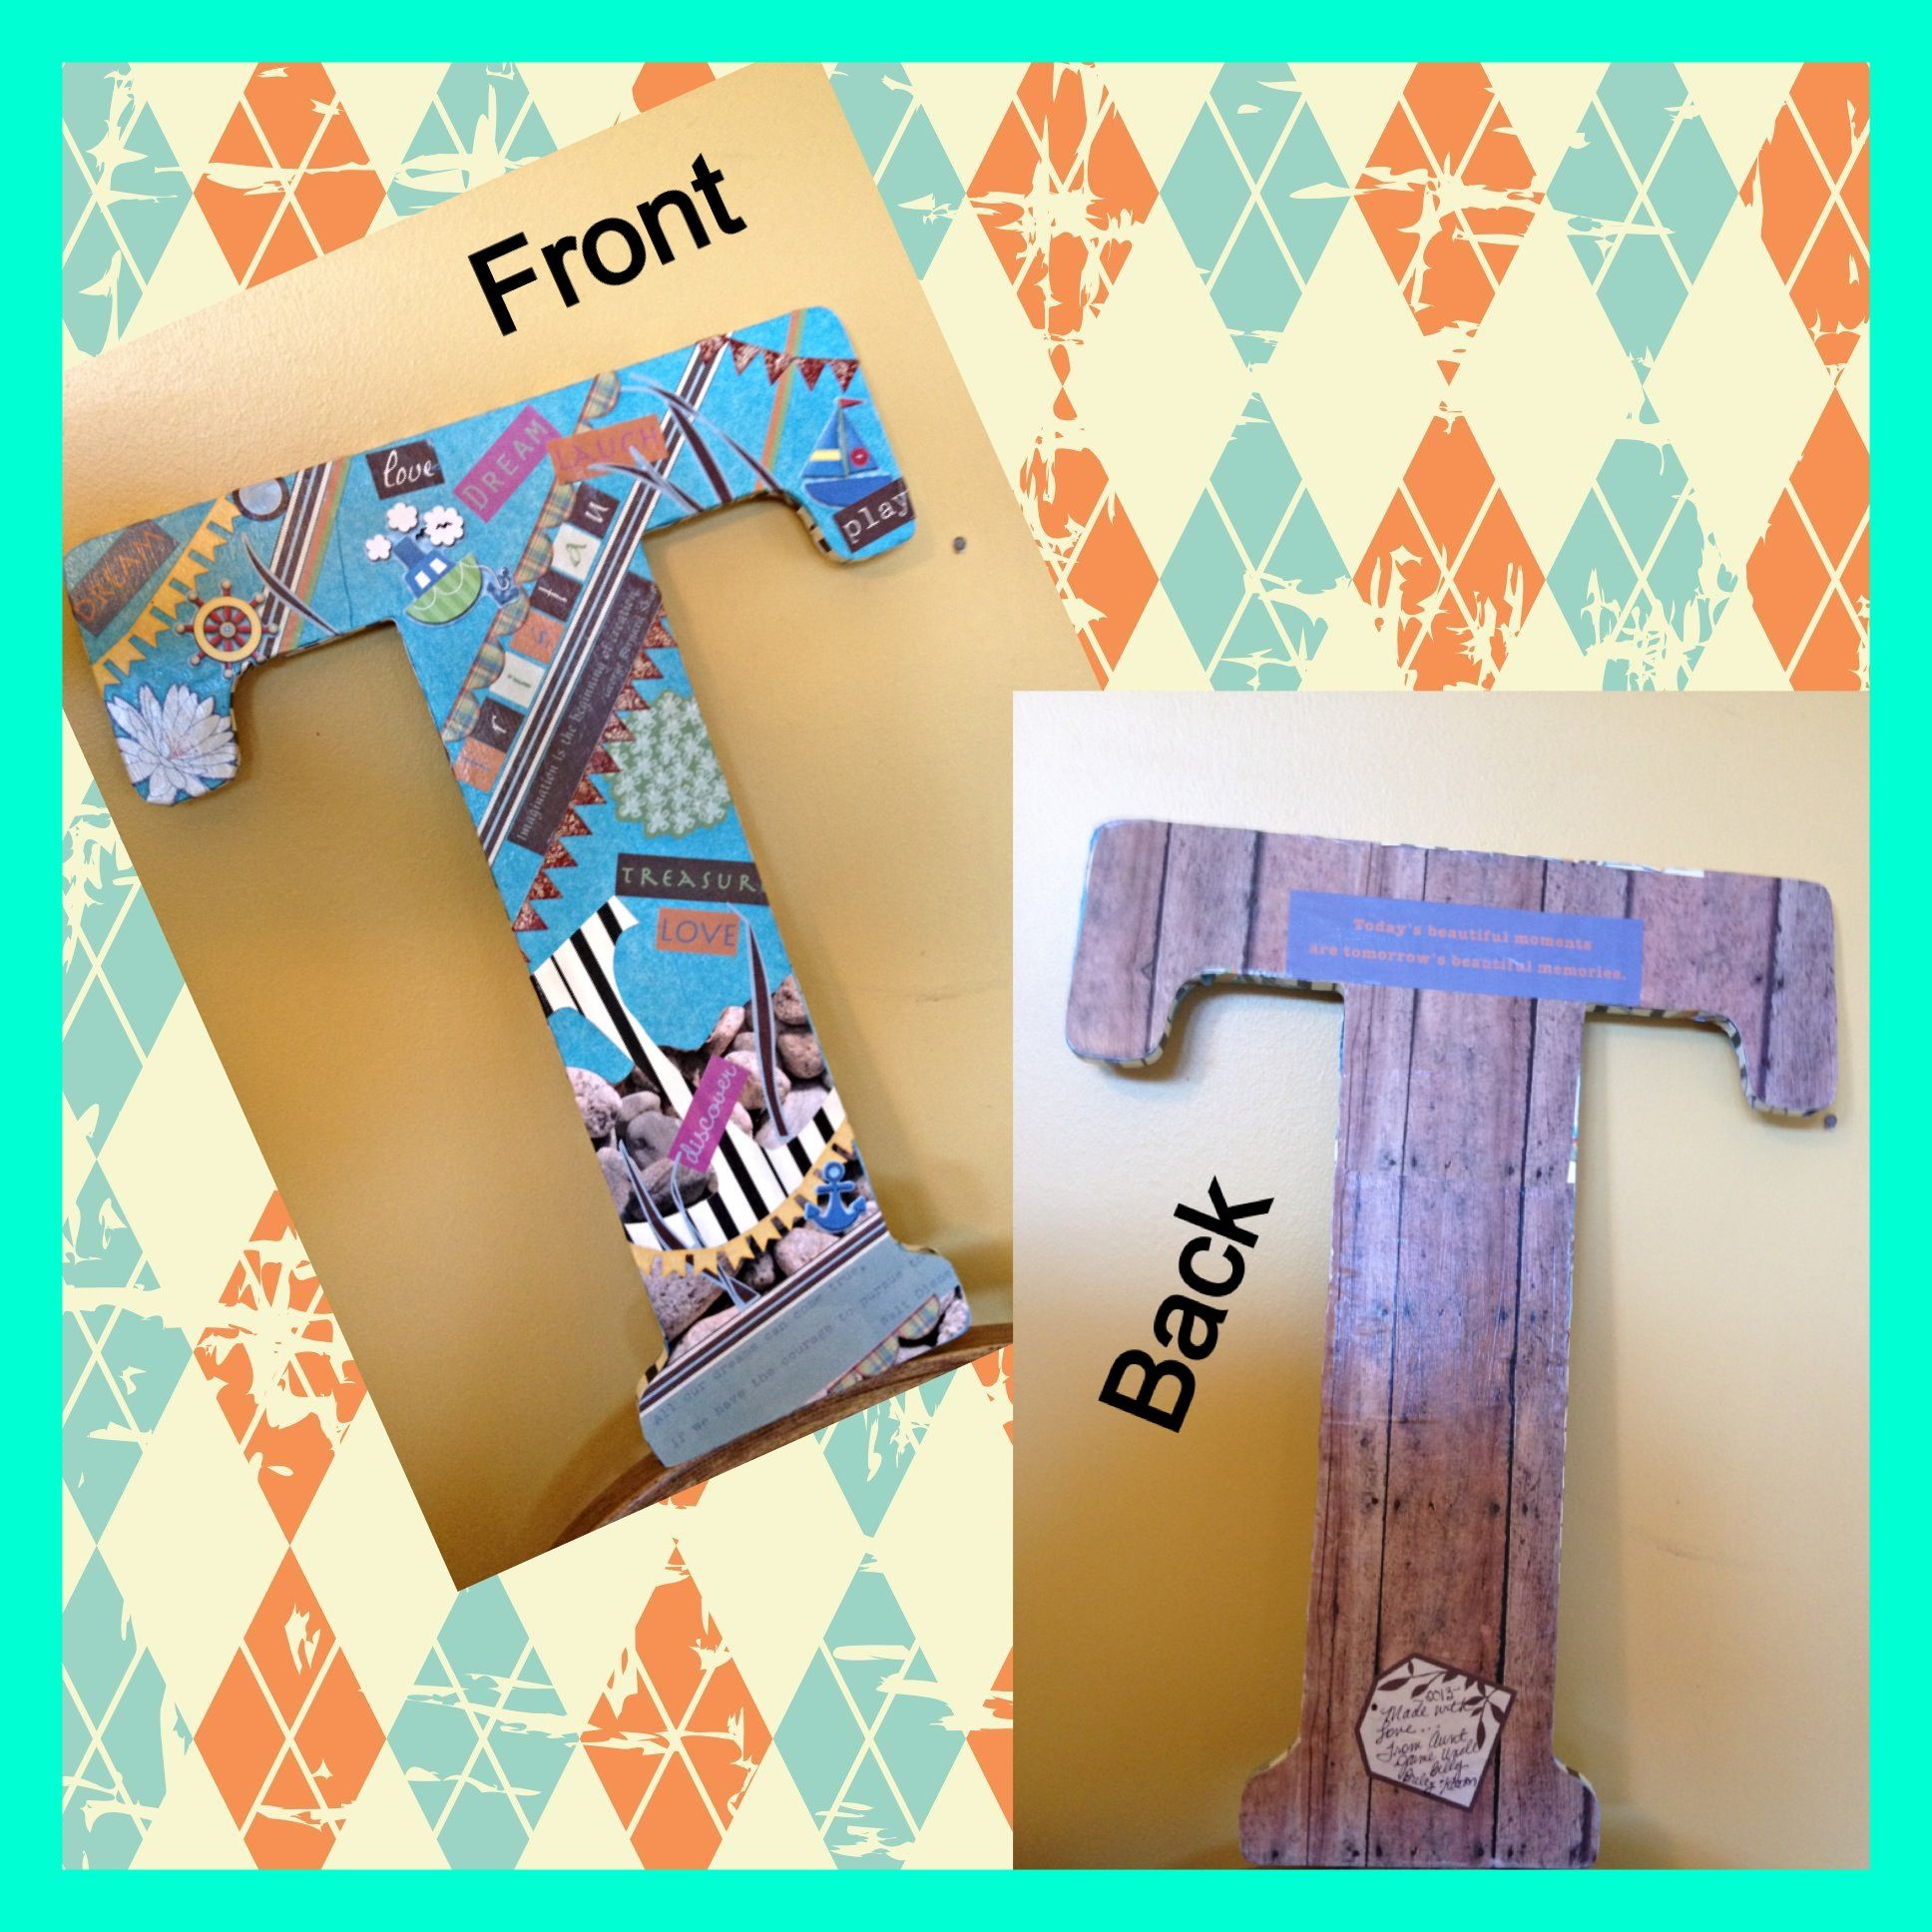 Used a wooden letter, craft glue, tissue paper, scrapbook paper, mod pudge, foam brush, embellishment stickers. Completed front then covered the back with paper. Mid podge all, cure and hand with command strips!